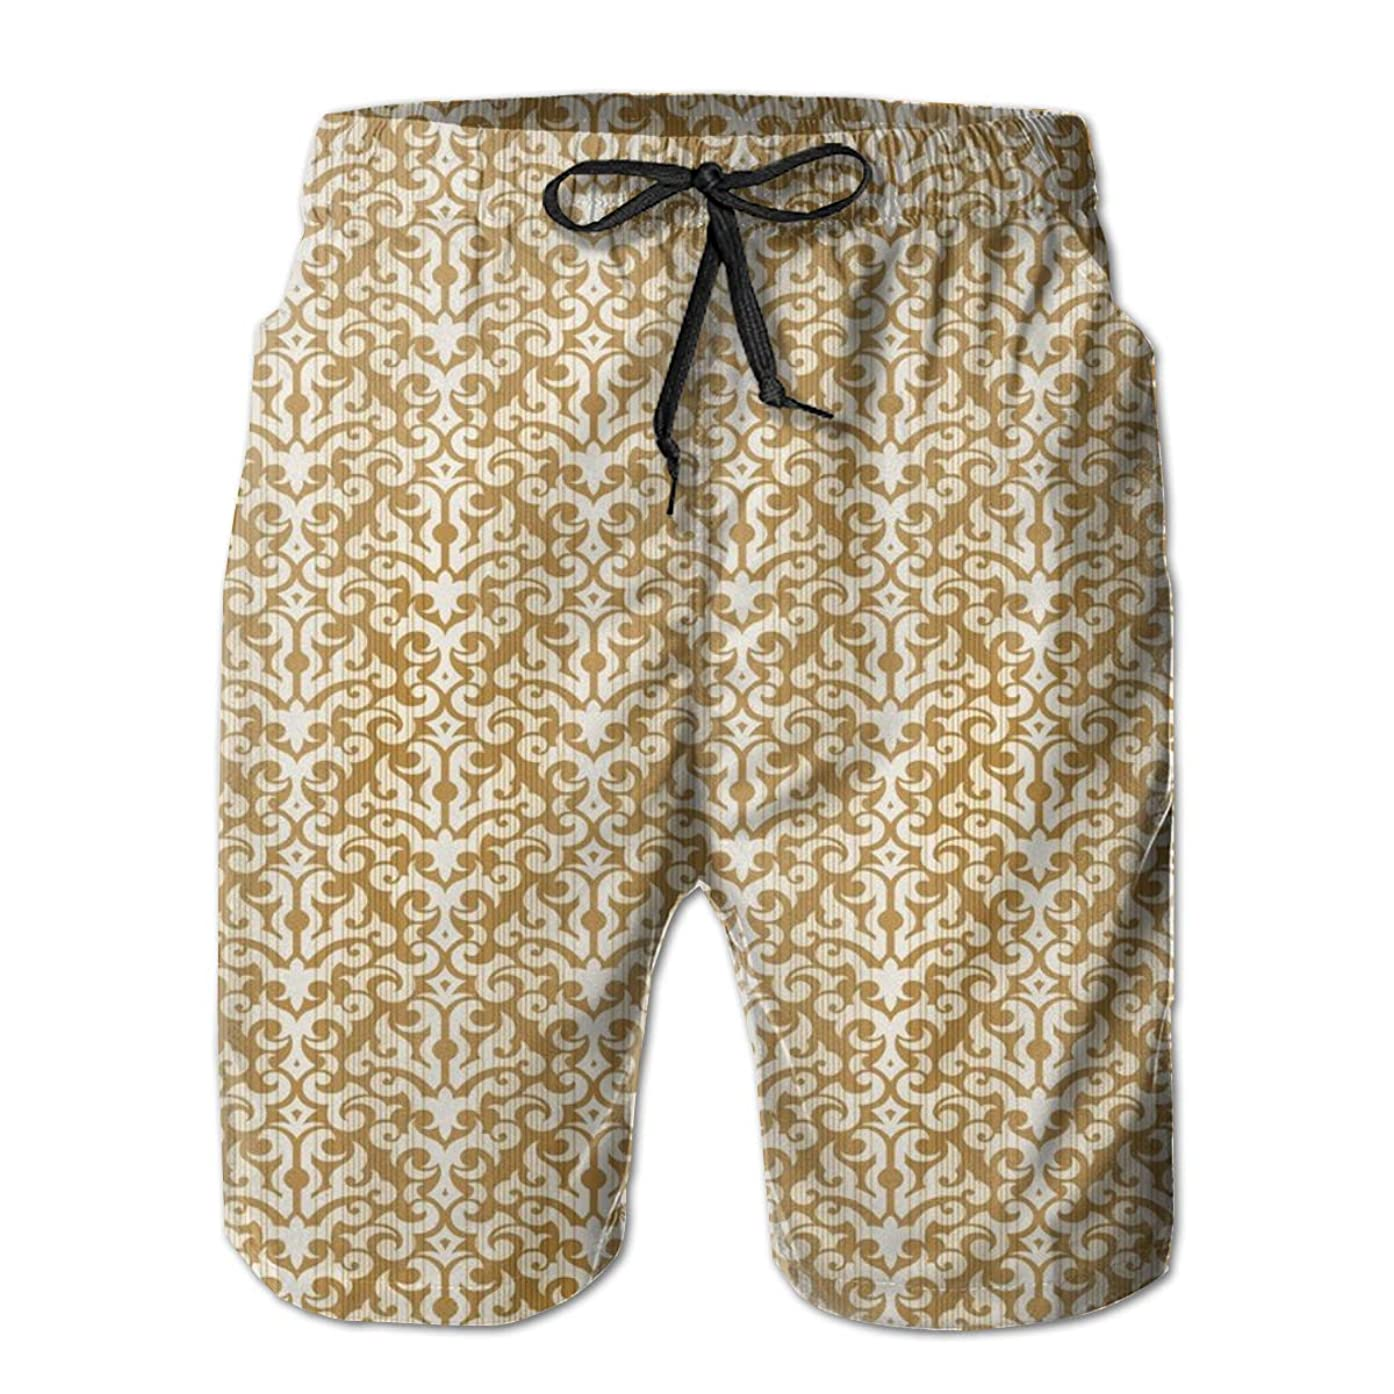 GULTMEE Men Swim Trunks Beach Shorts,Abstract Floral Pattern Withedieval Design Ornamental Victorian Image